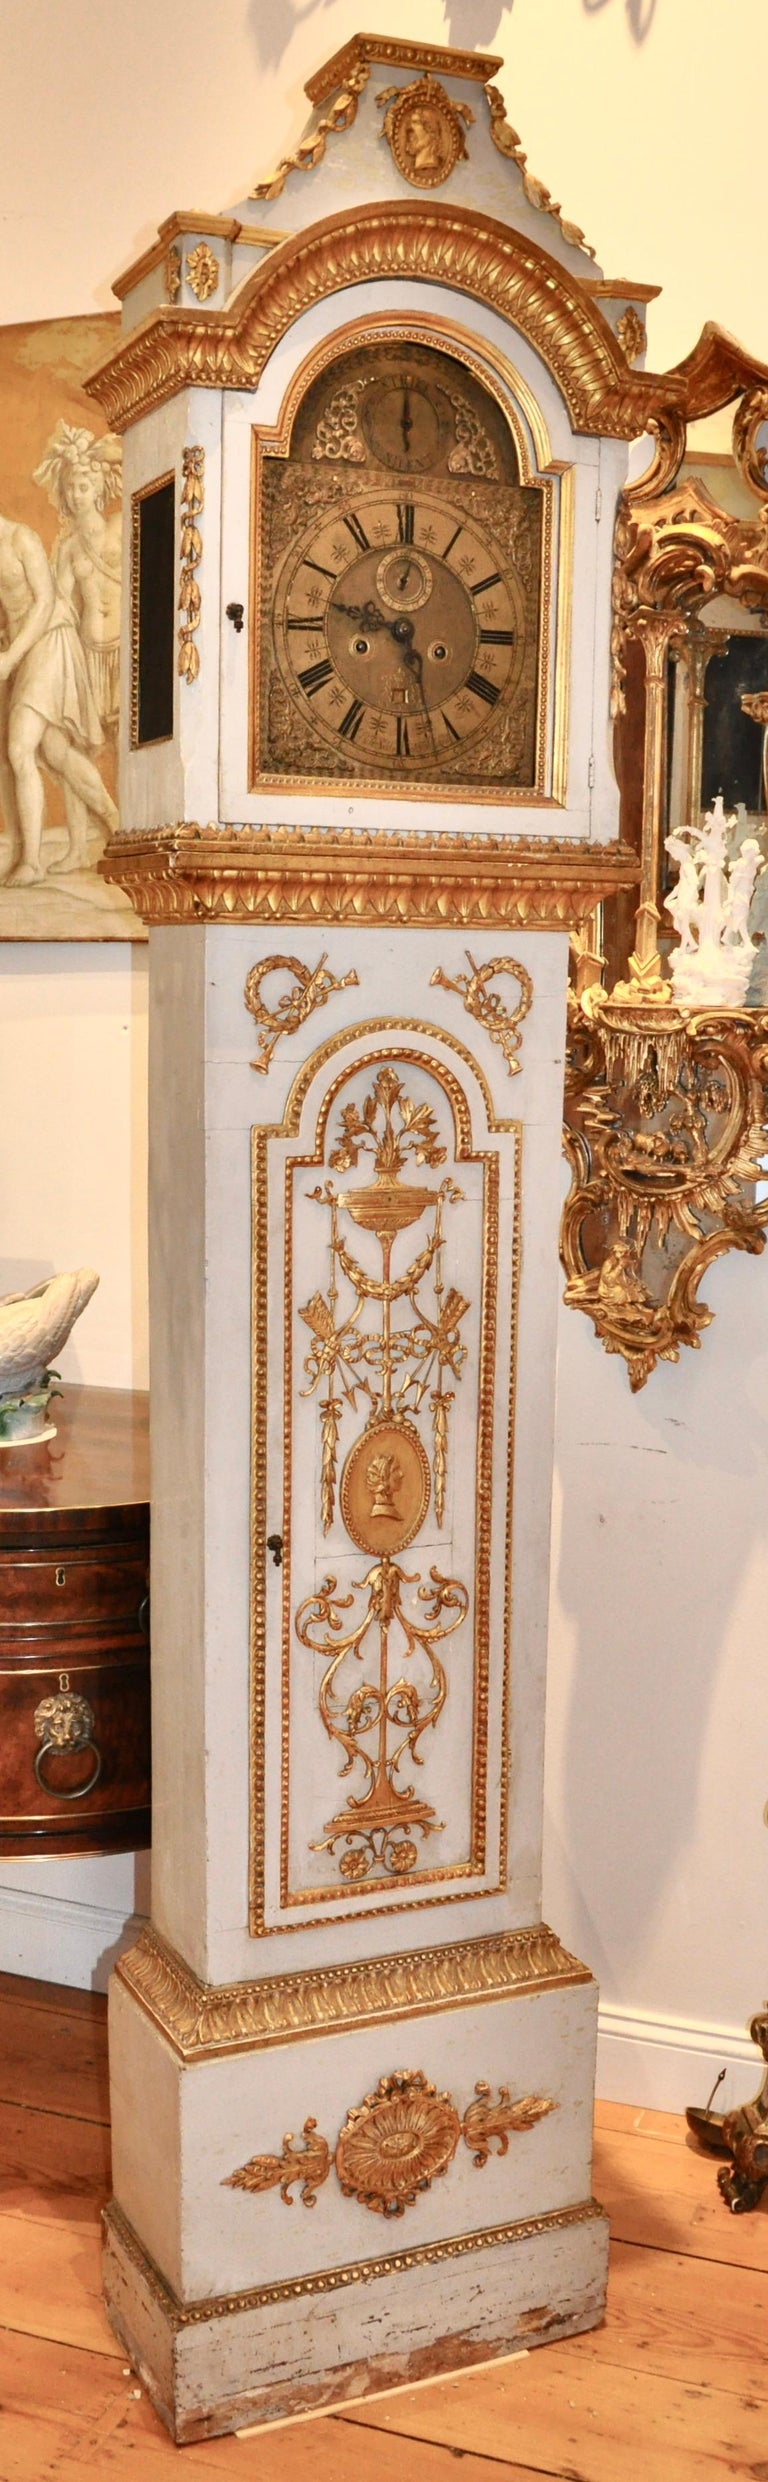 Early 19th century Danish carved and giltwood neoclassical tall case clock. Original gilding on all hand carved neoclassical ornamentation. Palace provenance, more than likely. Profile of each a man and a woman, most likely nobility or from the